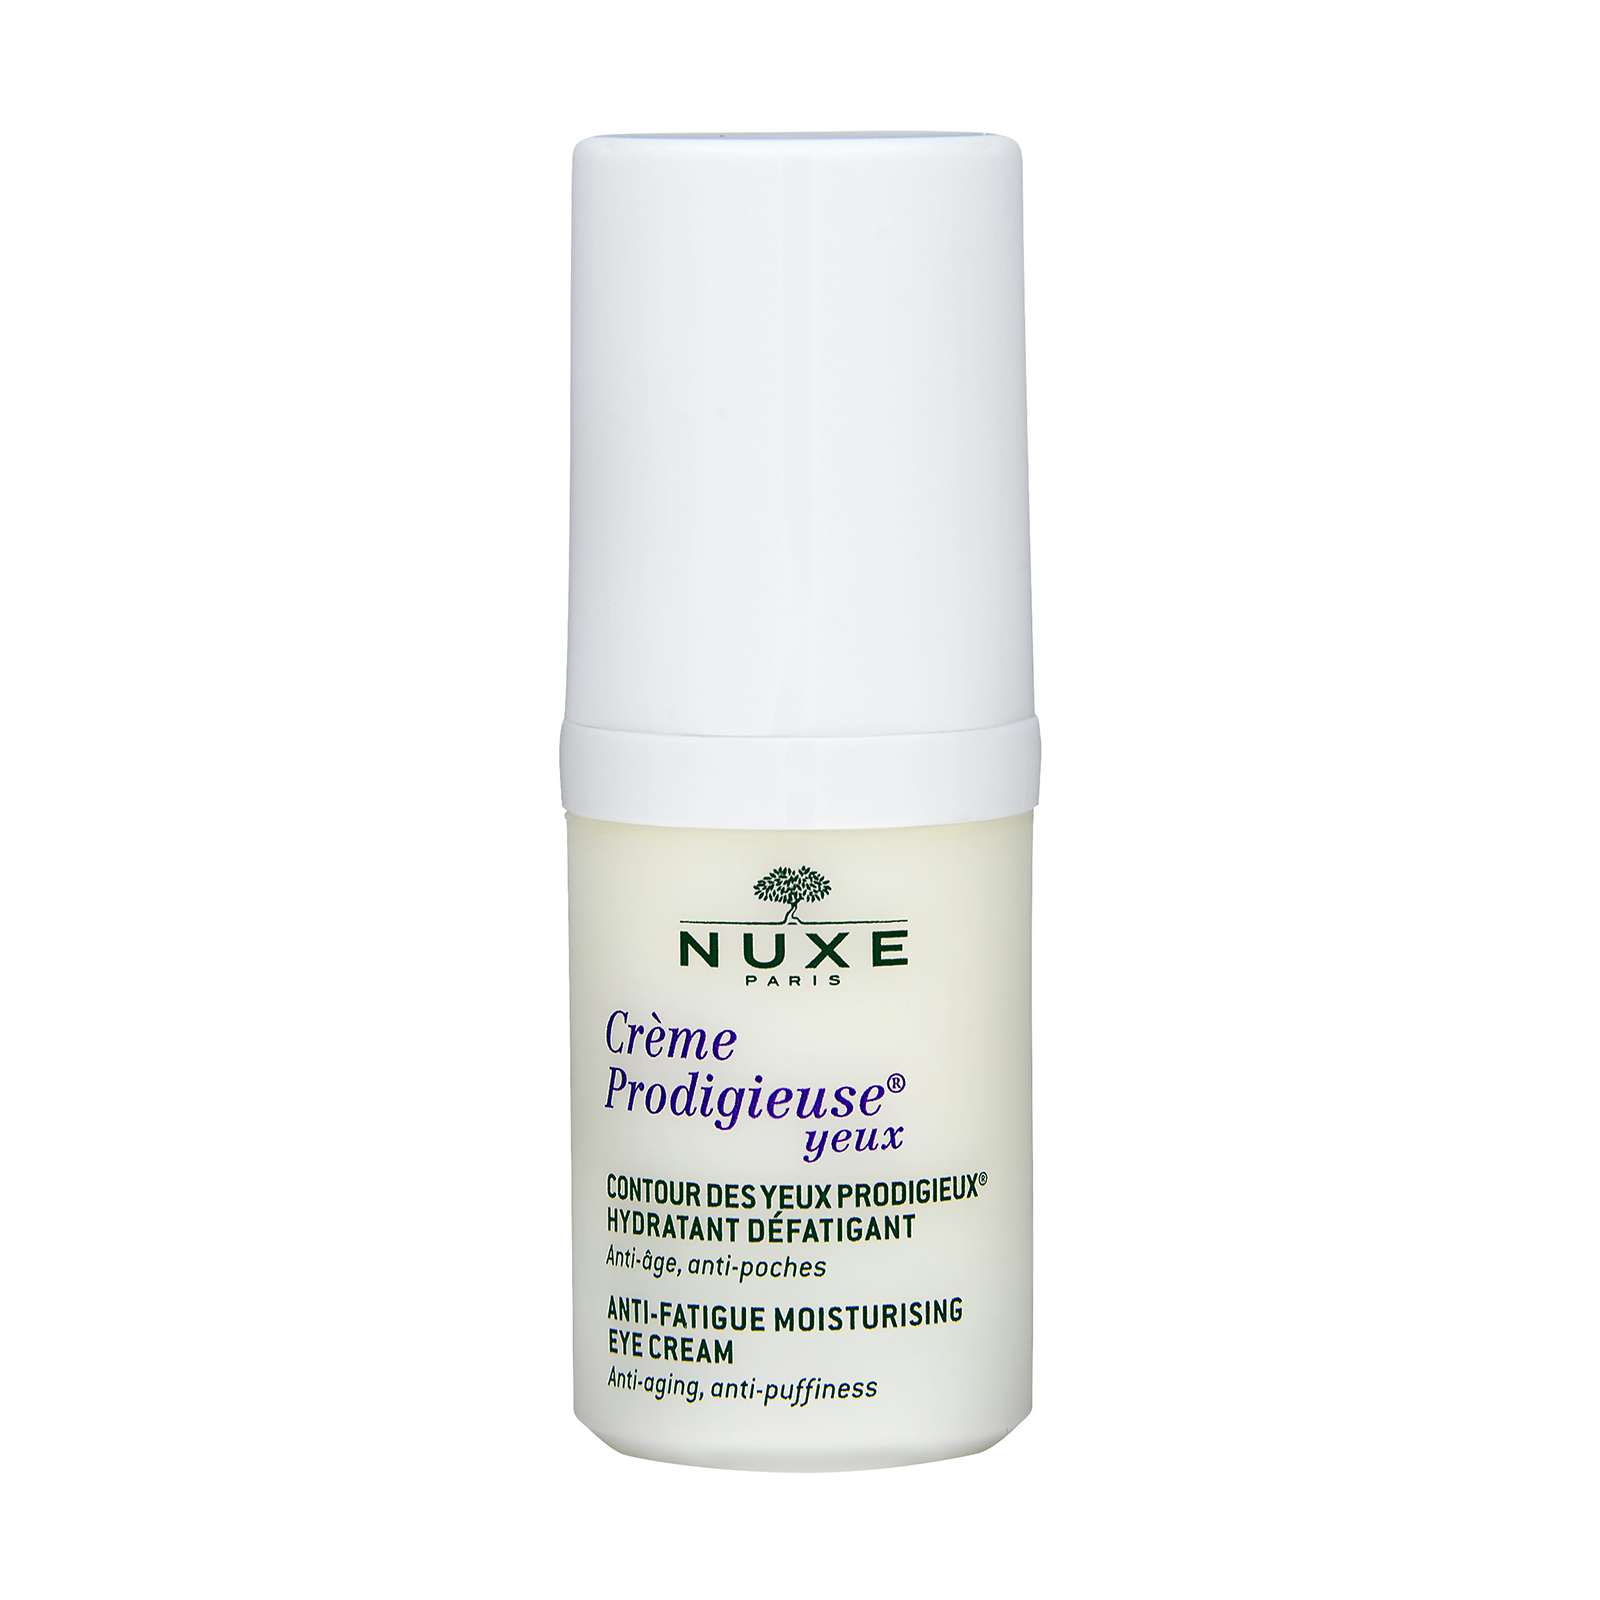 NUXE  Anti-Fatigue Moisturizing Eye Cream 0.5oz, 15ml